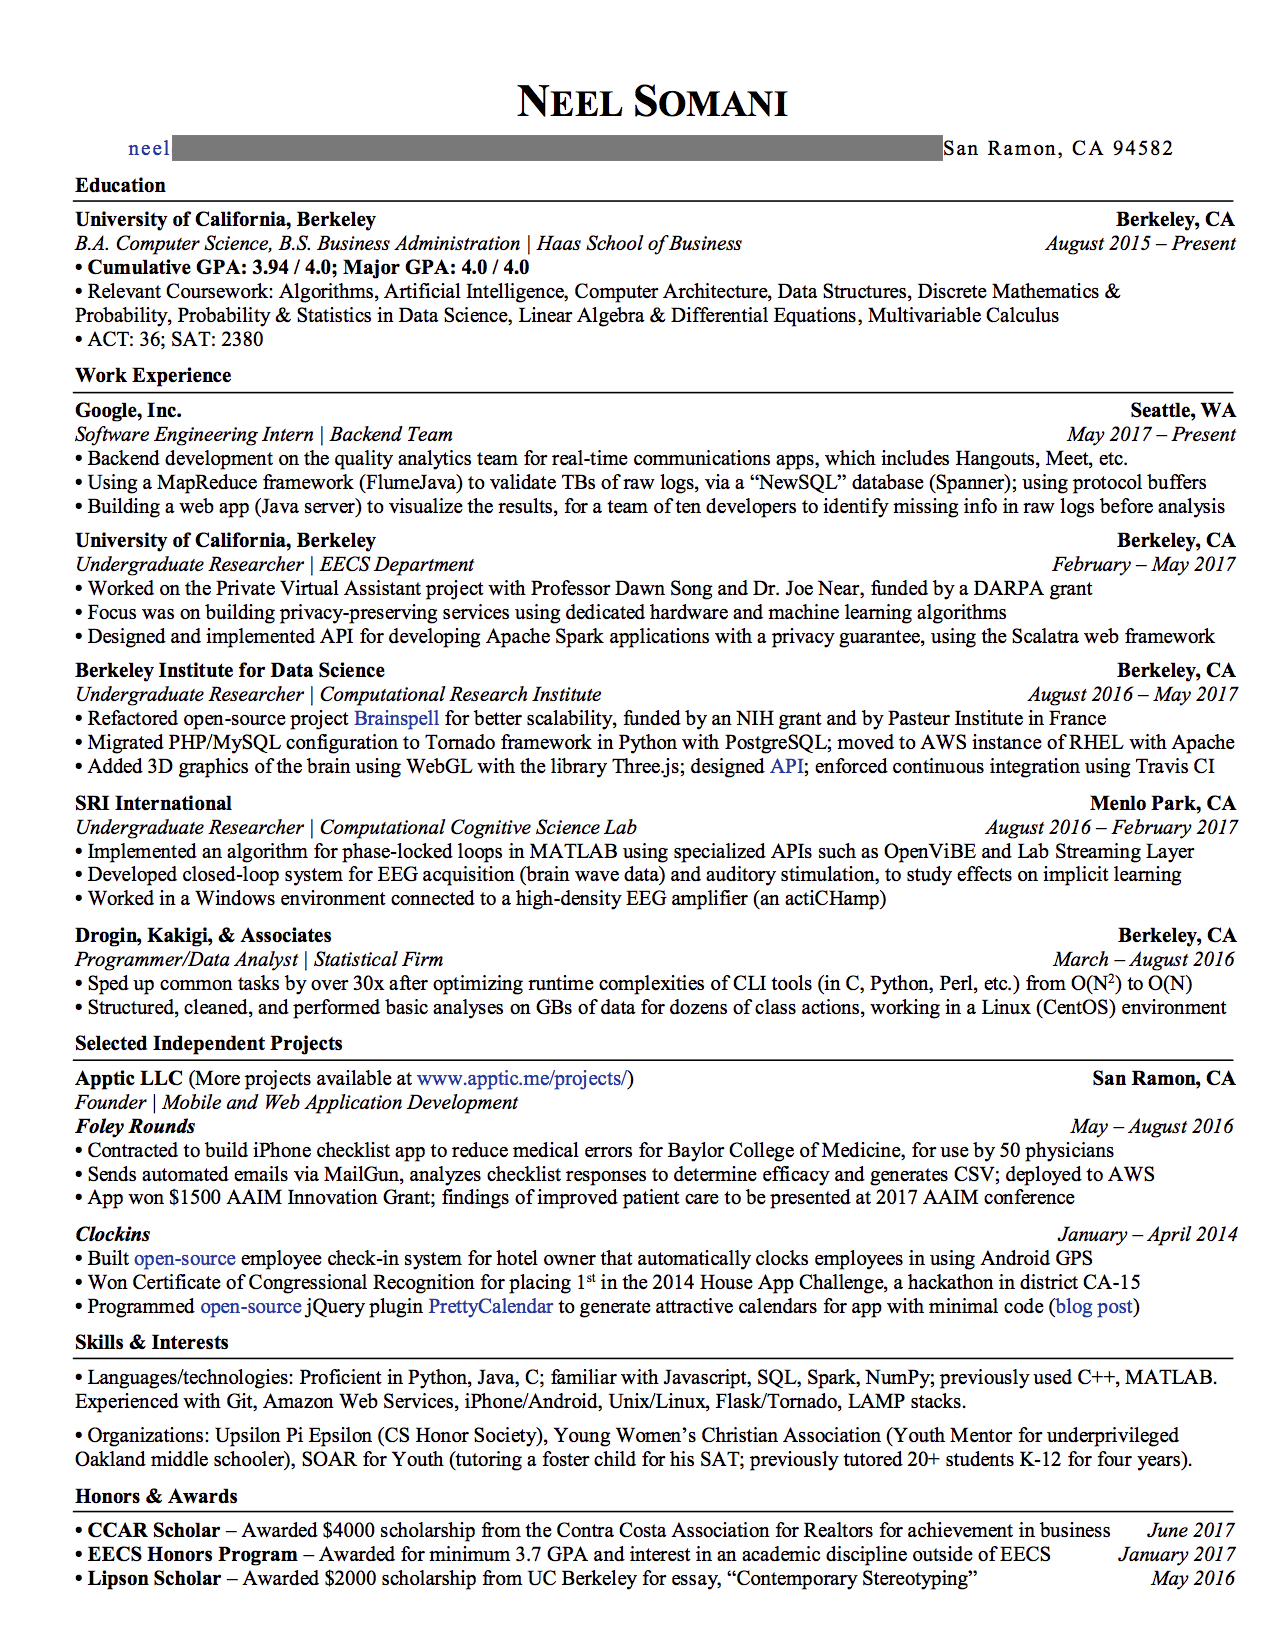 to craft winning resume land an offer from google glassdoor silicon writer Resume Silicon Valley Resume Writer